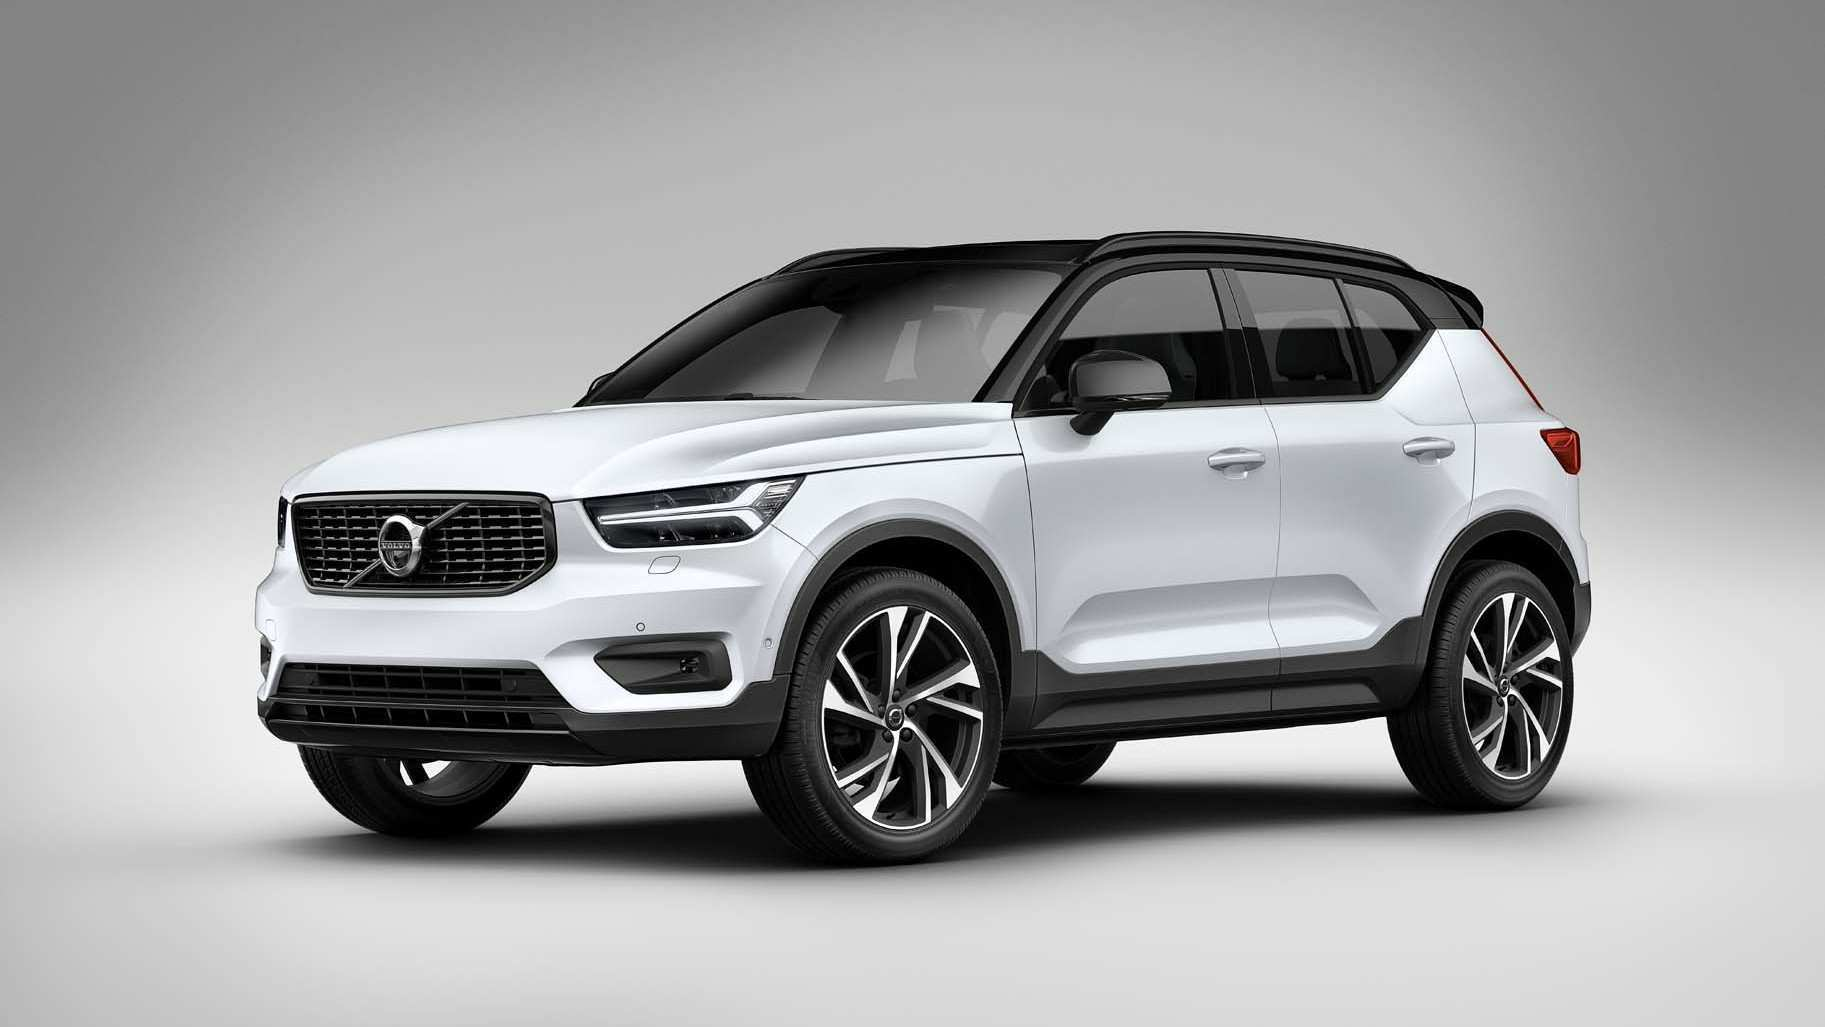 97 The The Volvo Suv 2019 First Drive Specs with The Volvo Suv 2019 First Drive